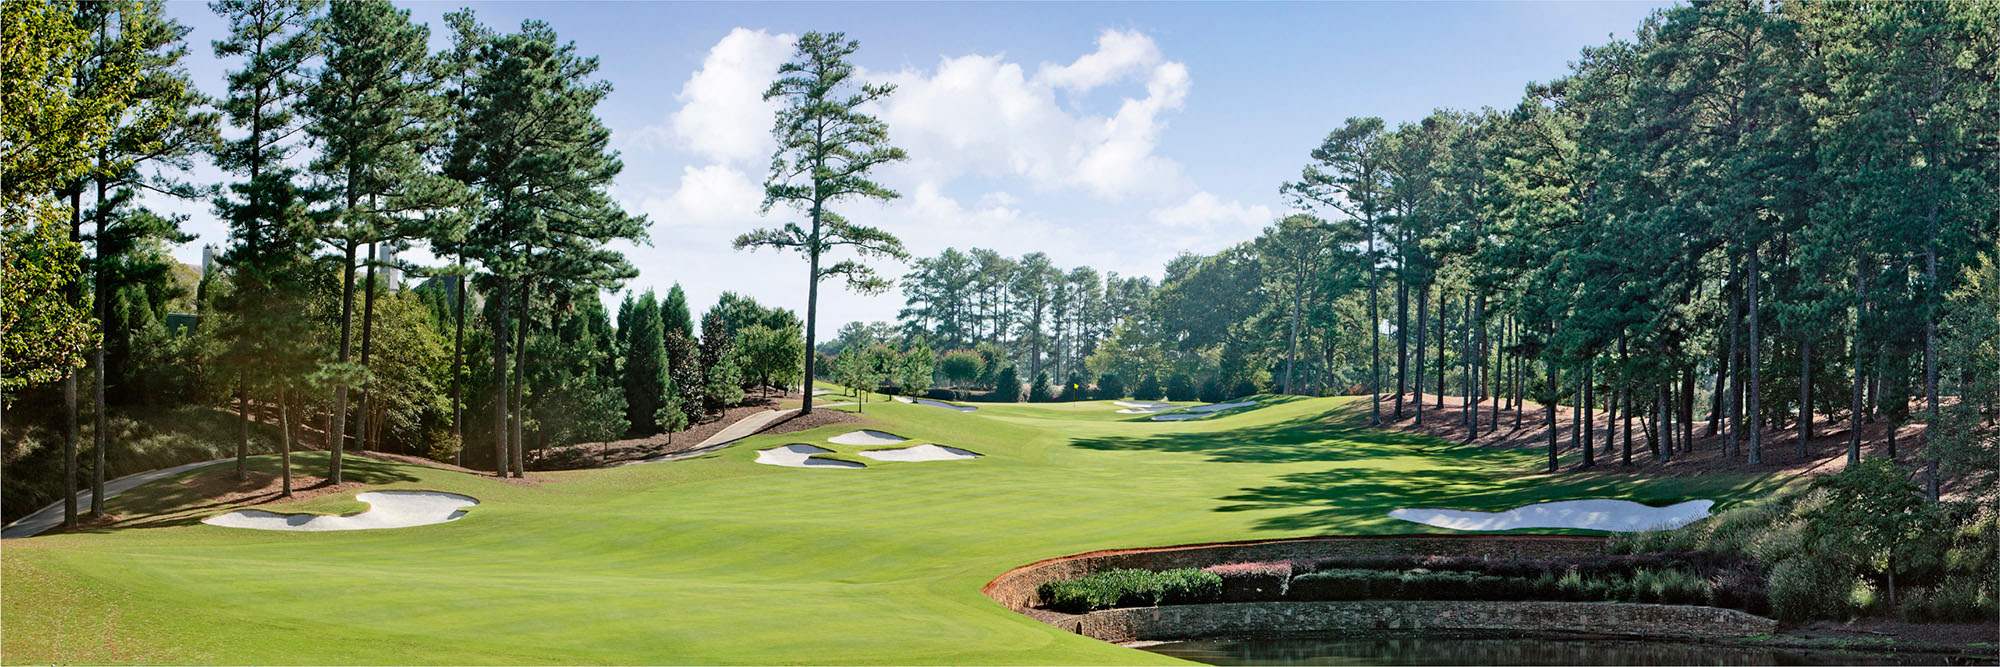 Golf Course Image - Cherokee Town and Country Club No. 18